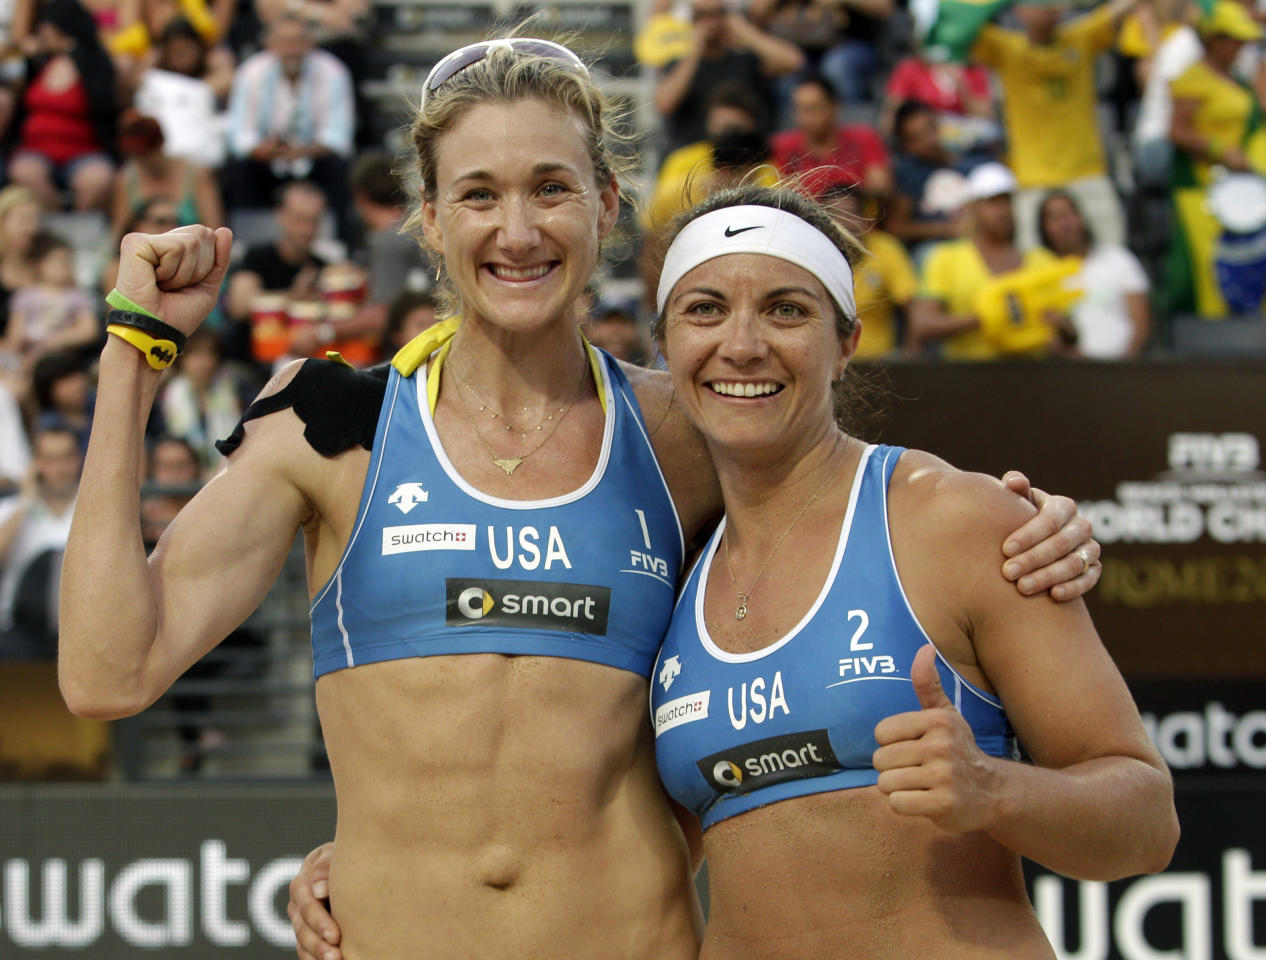 FILE - In this June 18, 2011, file photo, U.S. team Misty May-Treanor, left, and Kerri Walsh celebrate after winning the women's beach volleyball World Championships semifinal match against China in Rome. A year and a fortnight before the opening ceremonies, American beach volleyball players are still waiting for the U.S. and international governing bodies to agree on a system to decide who goes to London. (AP Photo/Pier Paolo Cito, File)